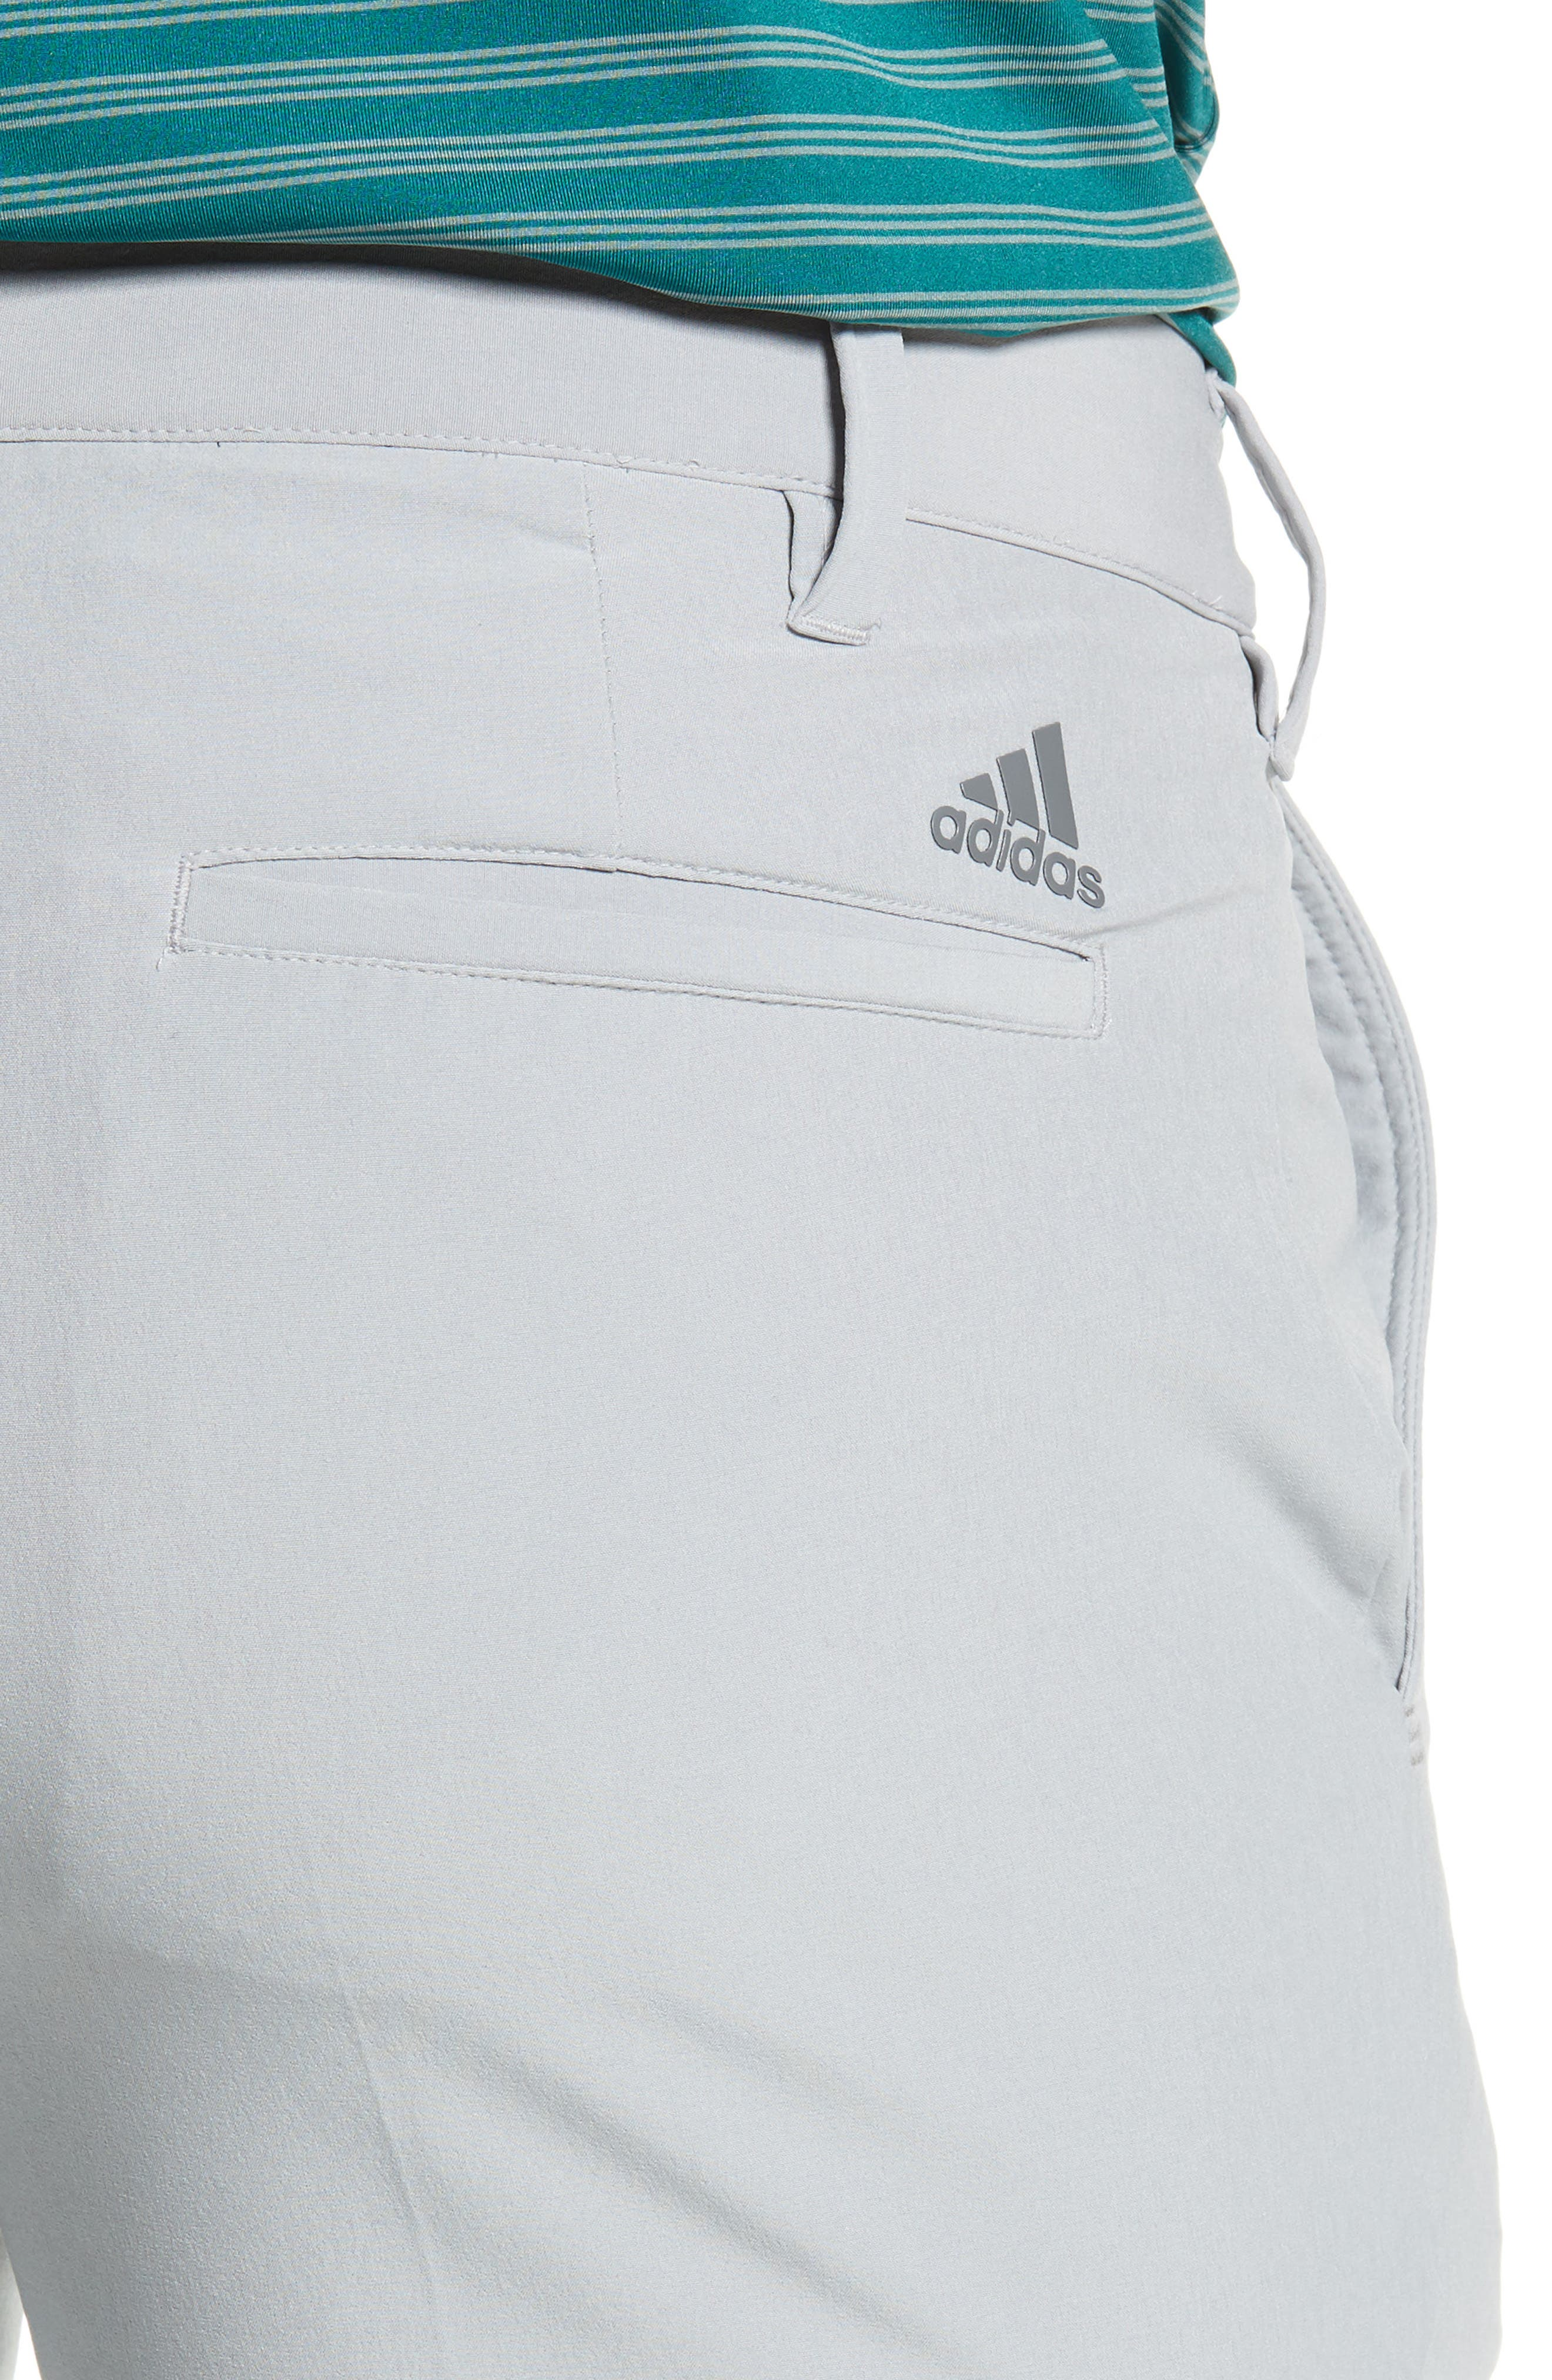 adidas Ultimate Regular Fit Golf Pants,                             Alternate thumbnail 4, color,                             MID GREY